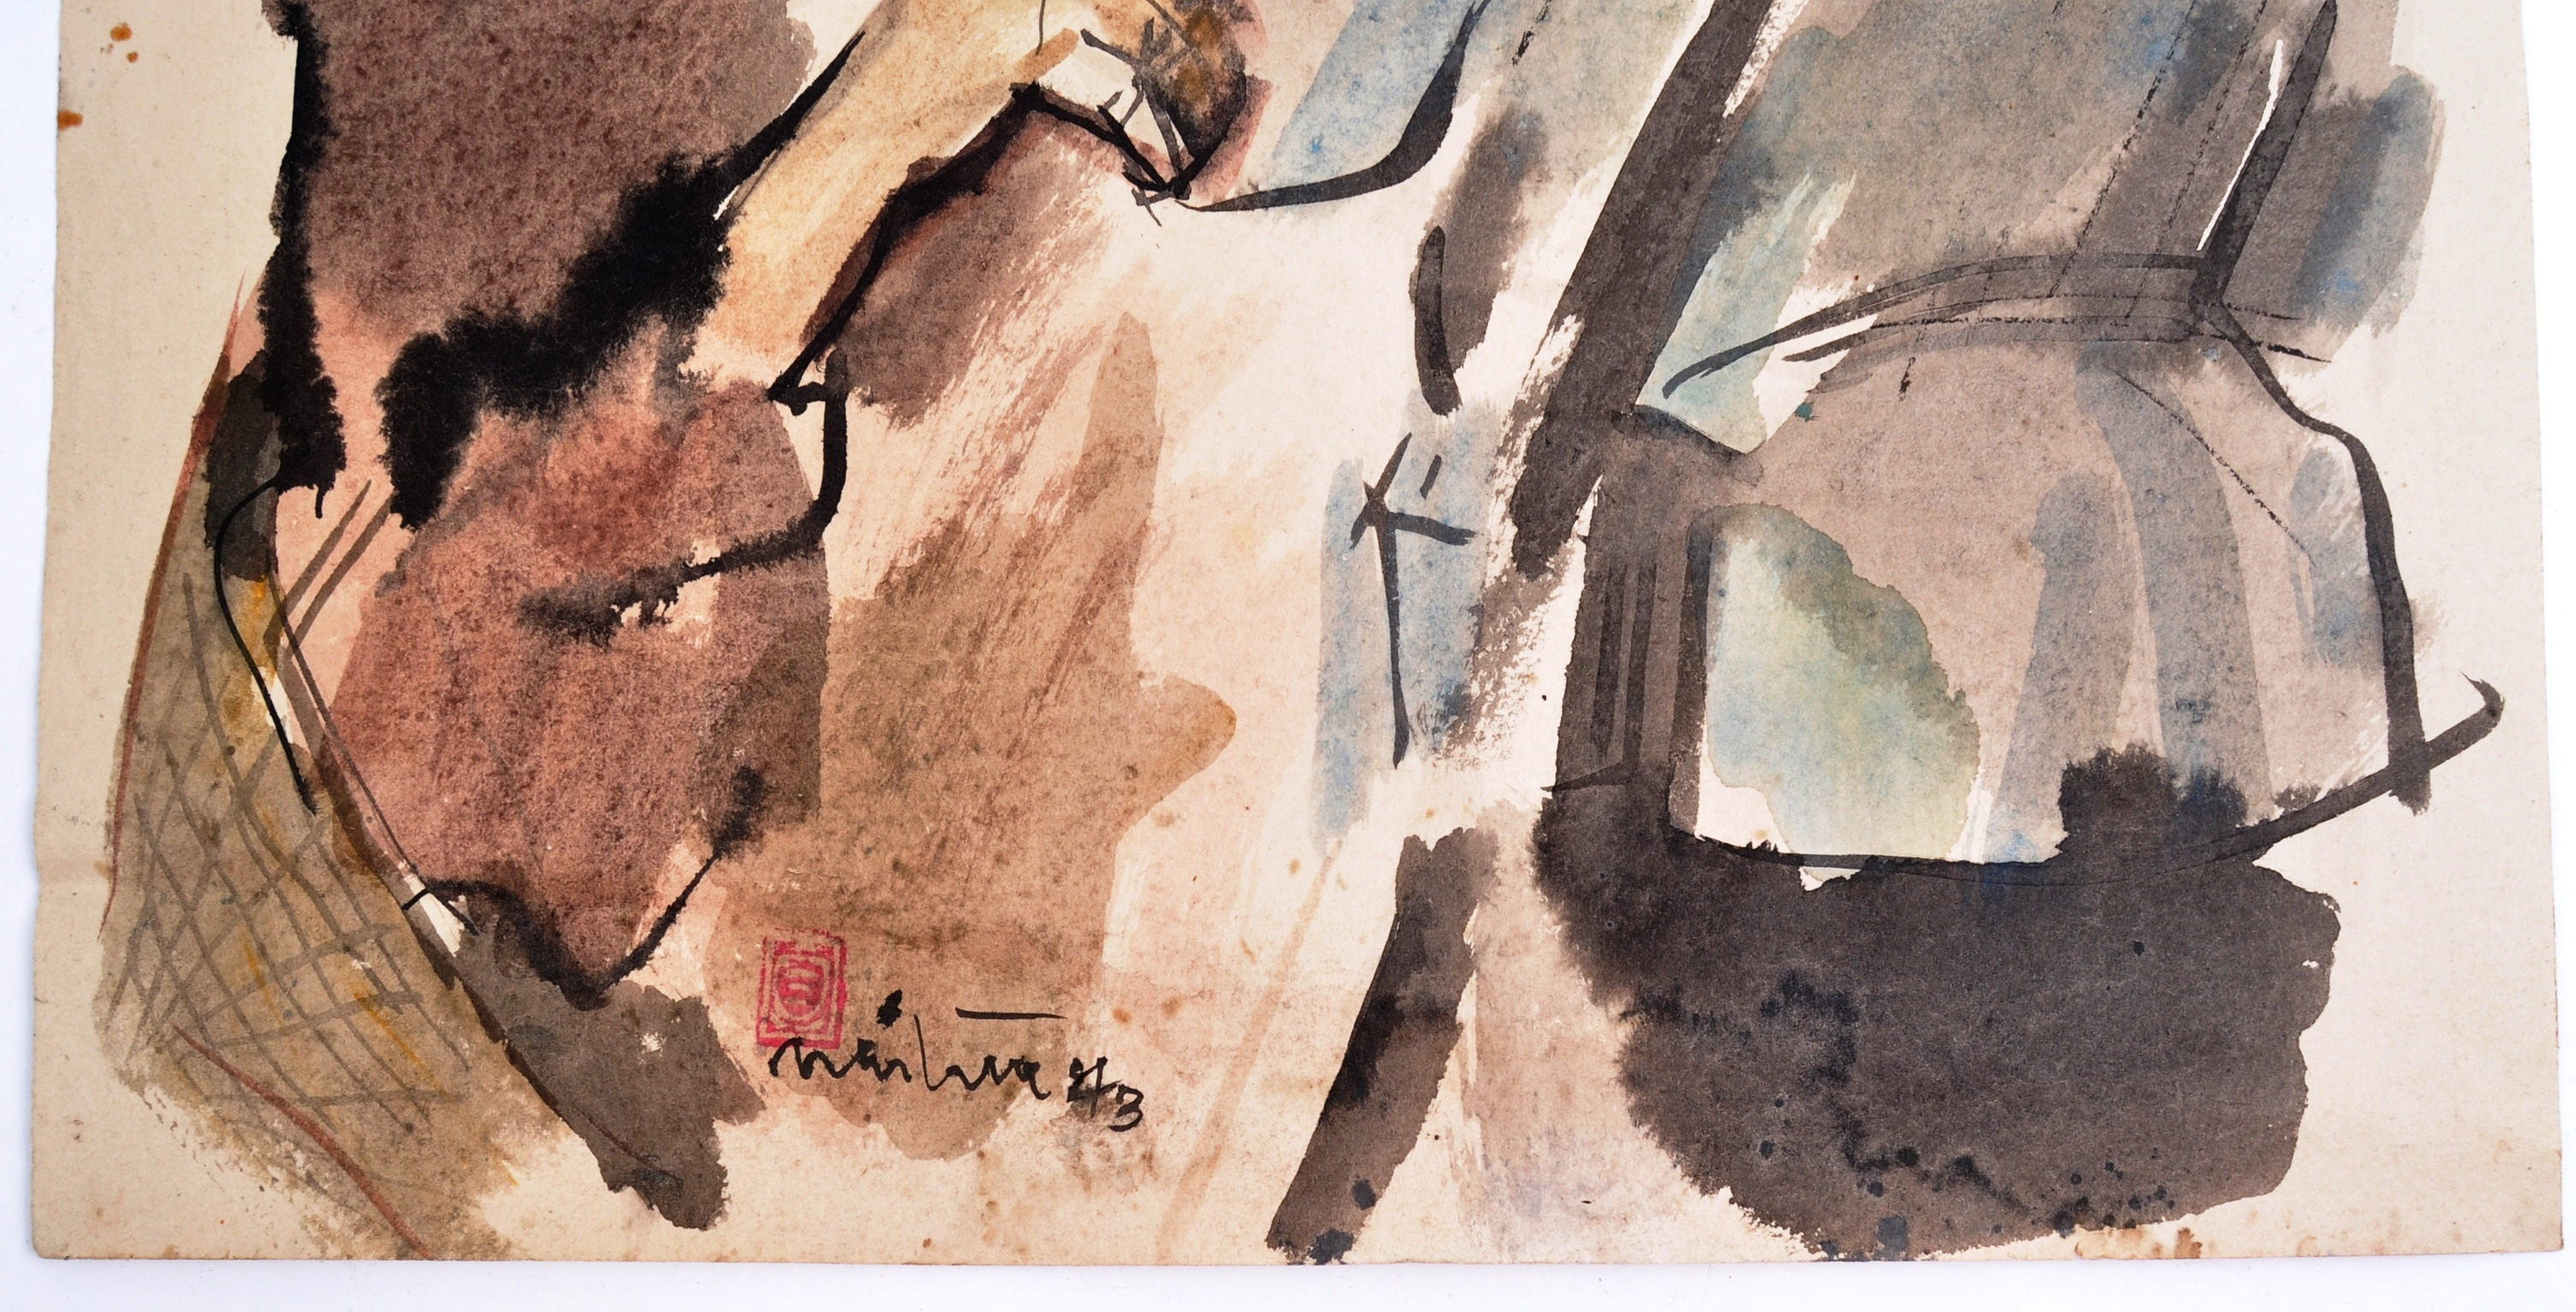 WWII SECOND WORLD WAR WATERCOLOUR PAINTING OF NAZI 1943 - Image 2 of 6